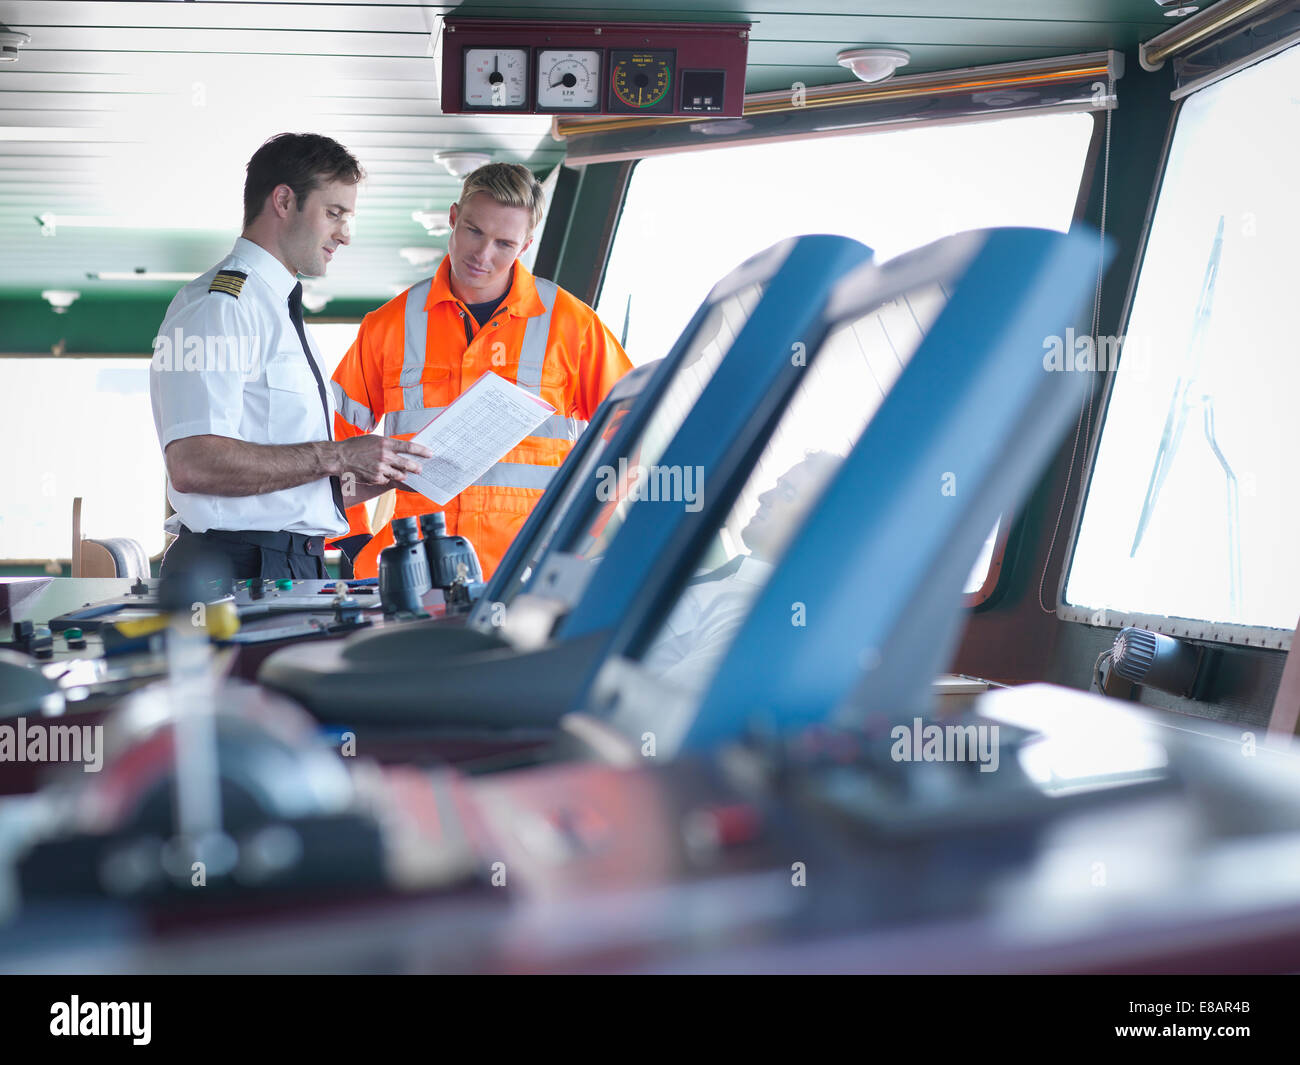 Captain and worker discussing notes on ship's bridge - Stock Image